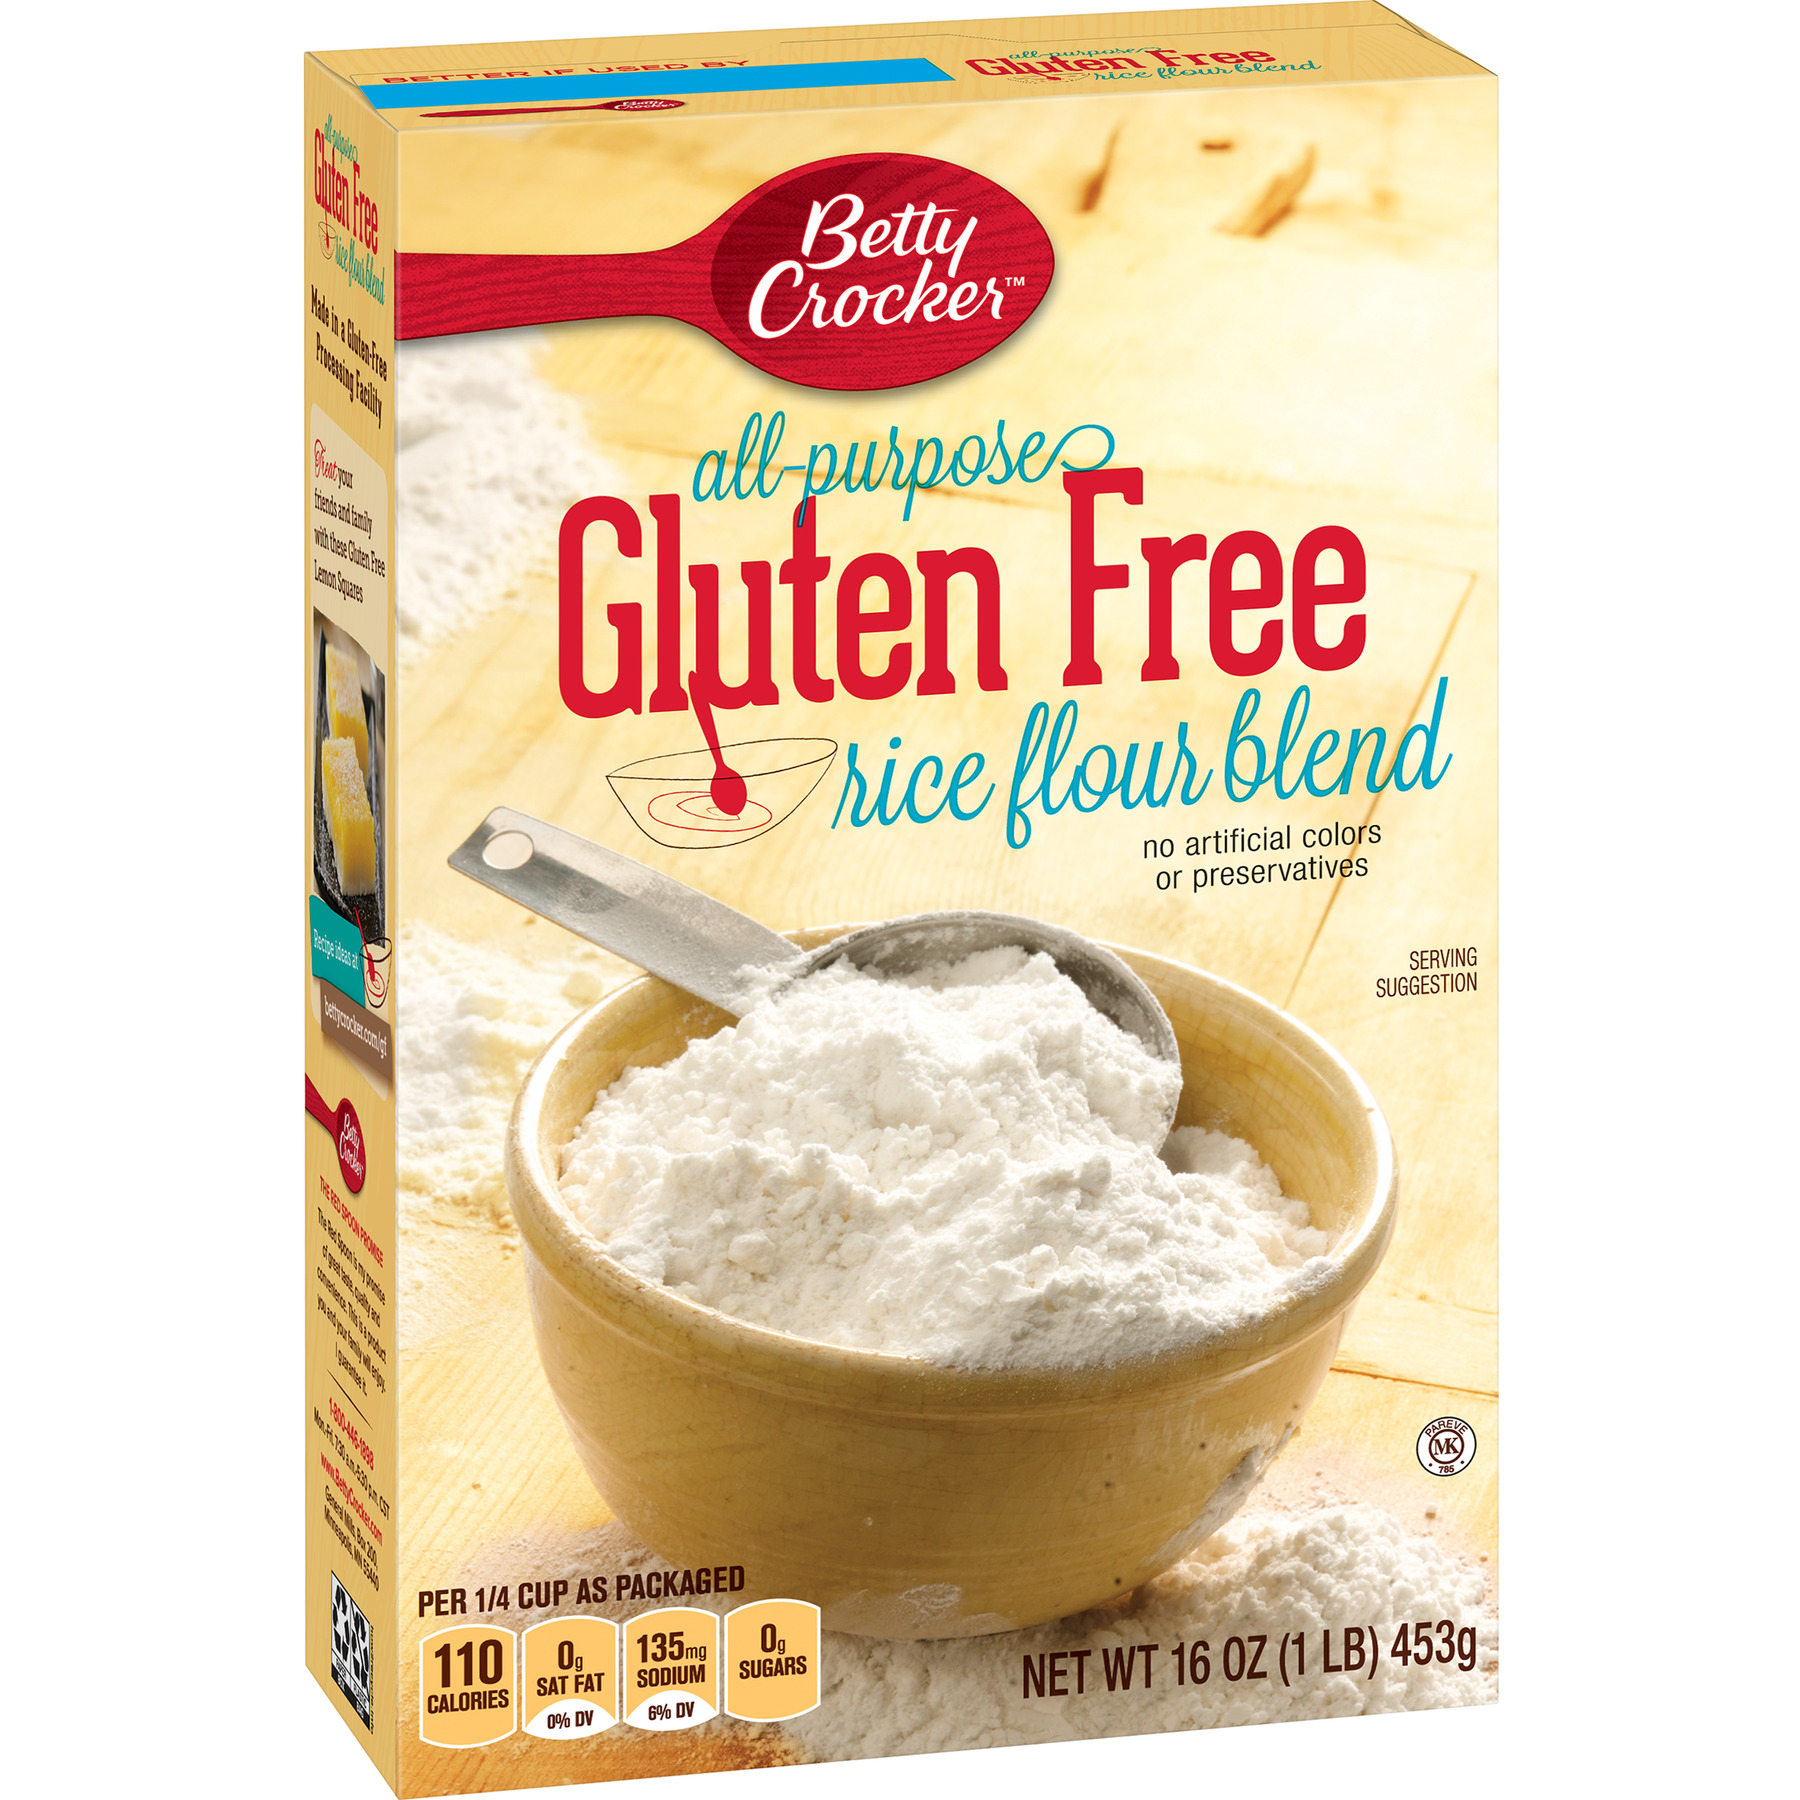 Betty Crocker All Purpose Gluten Free Rice Flour Blend, 16 oz Box